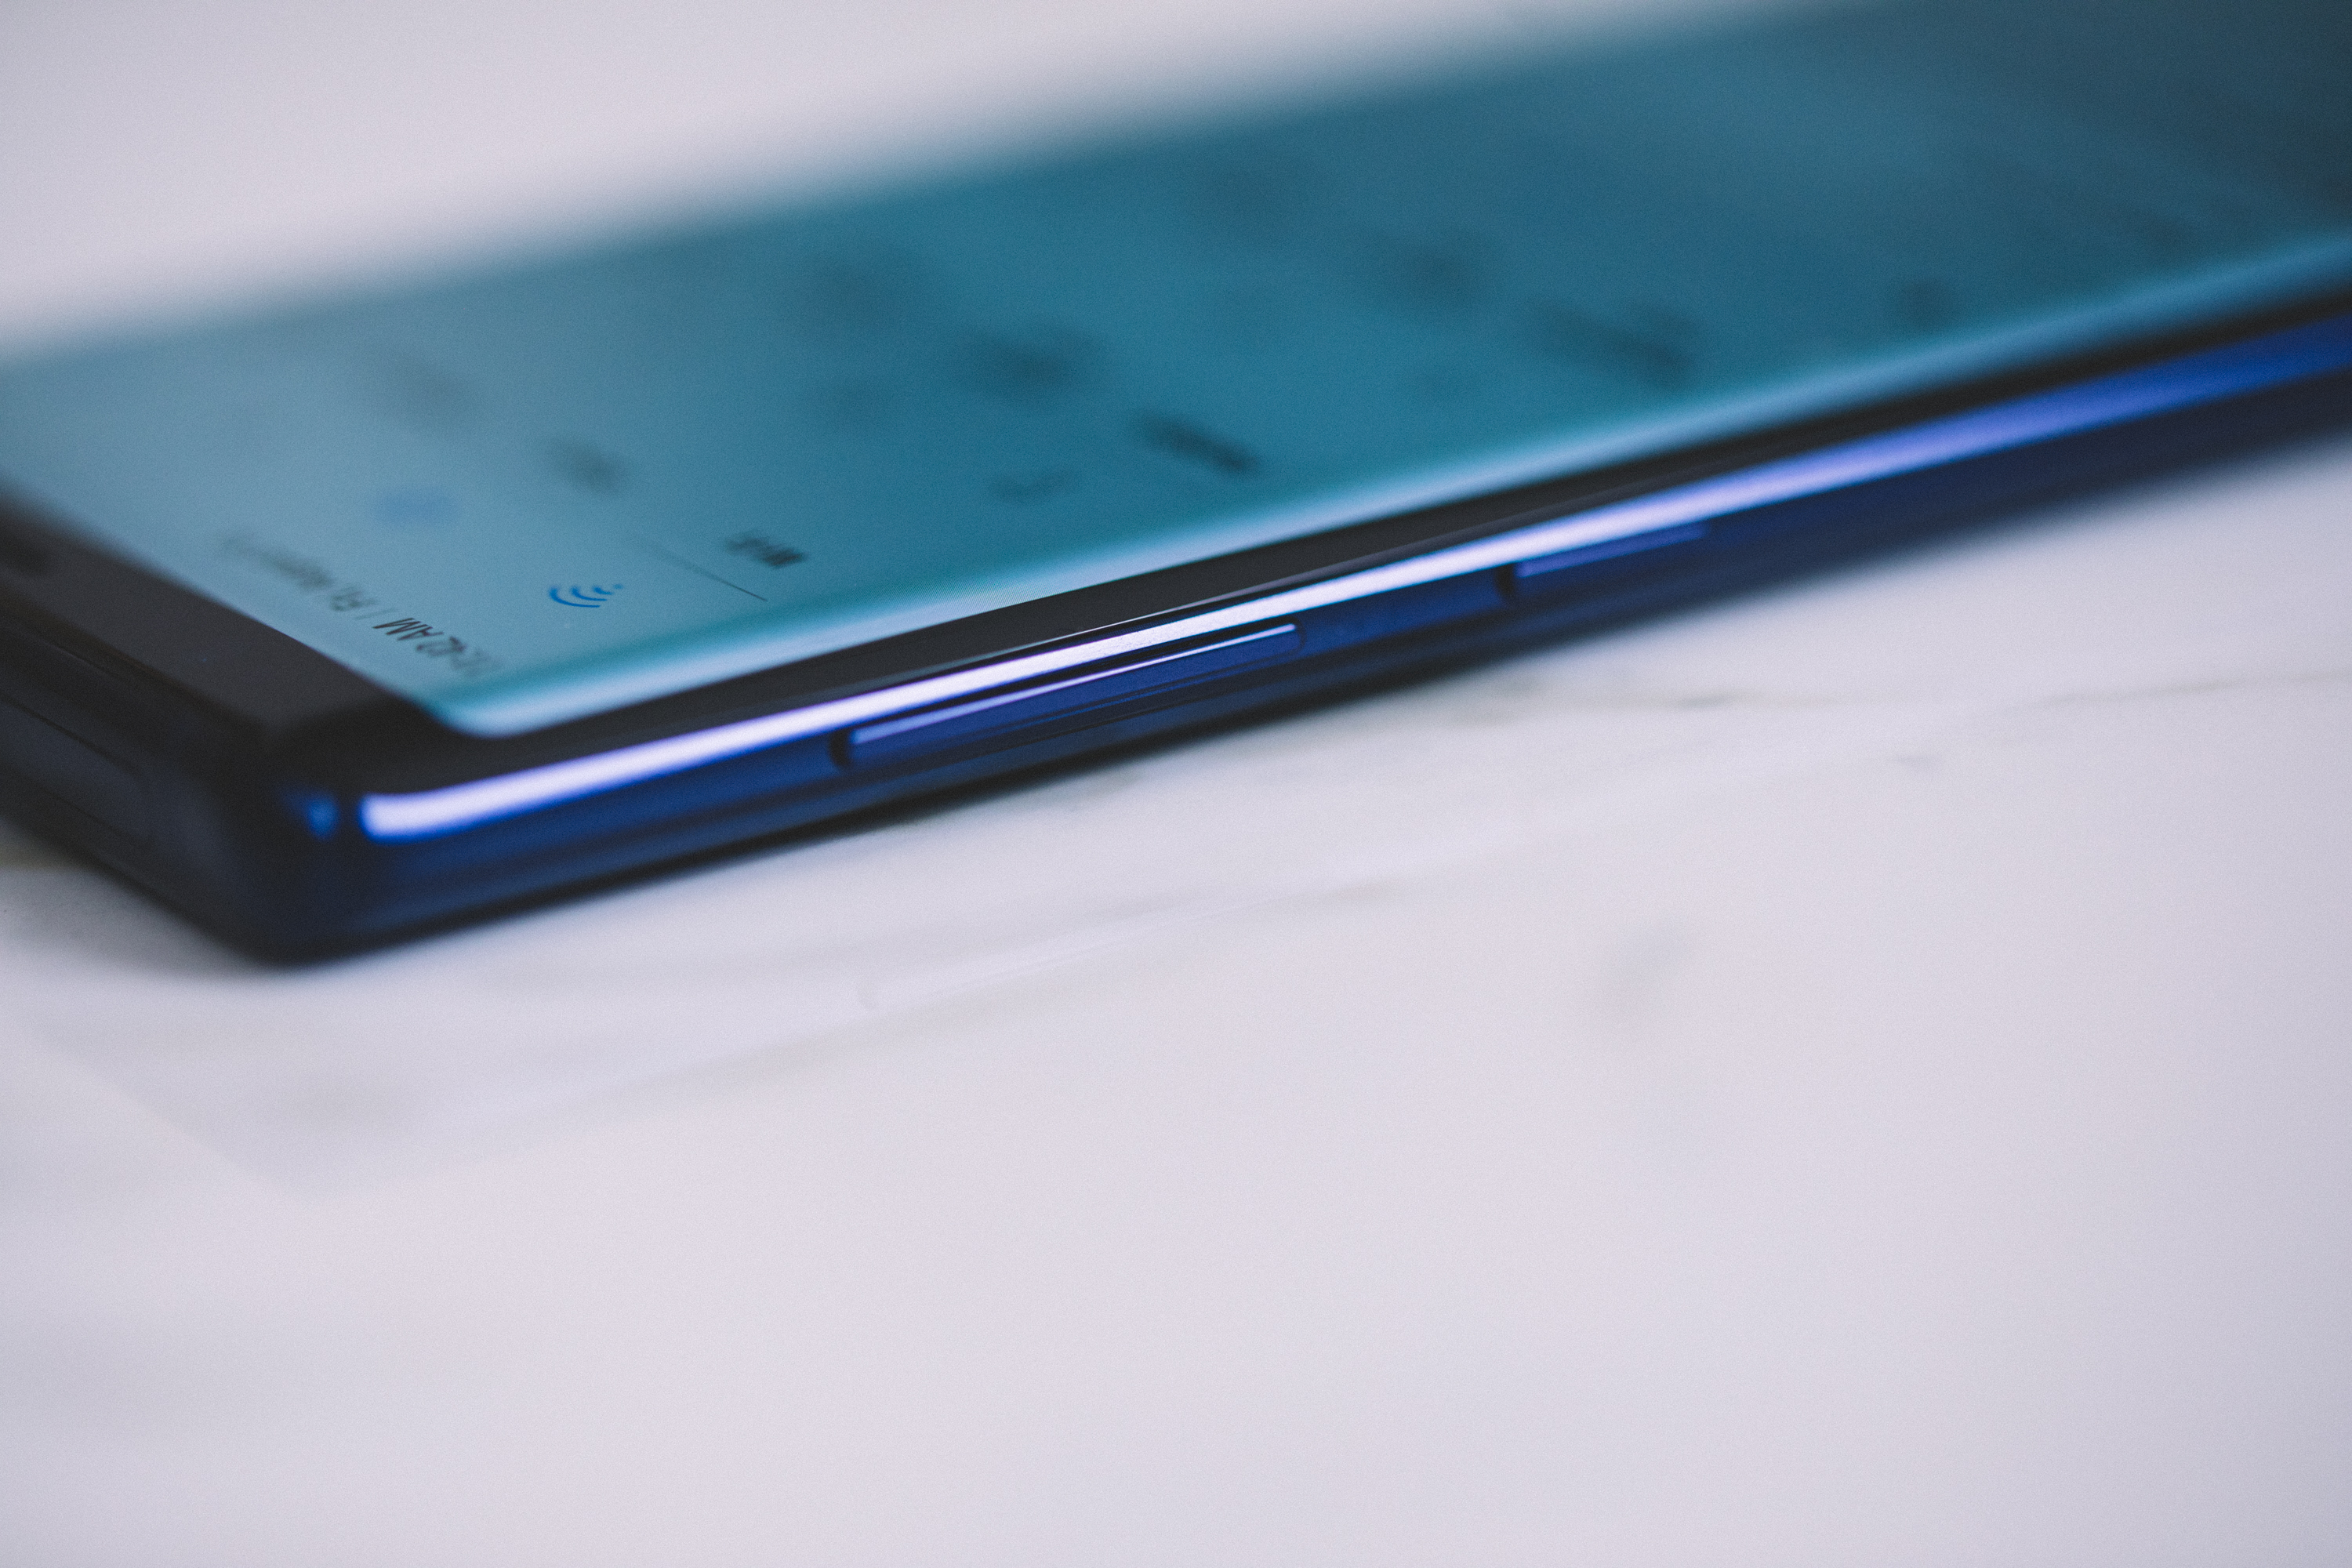 - samsung galaxy note 9 014 - Samsung Galaxy Note 9 review – TechCrunch